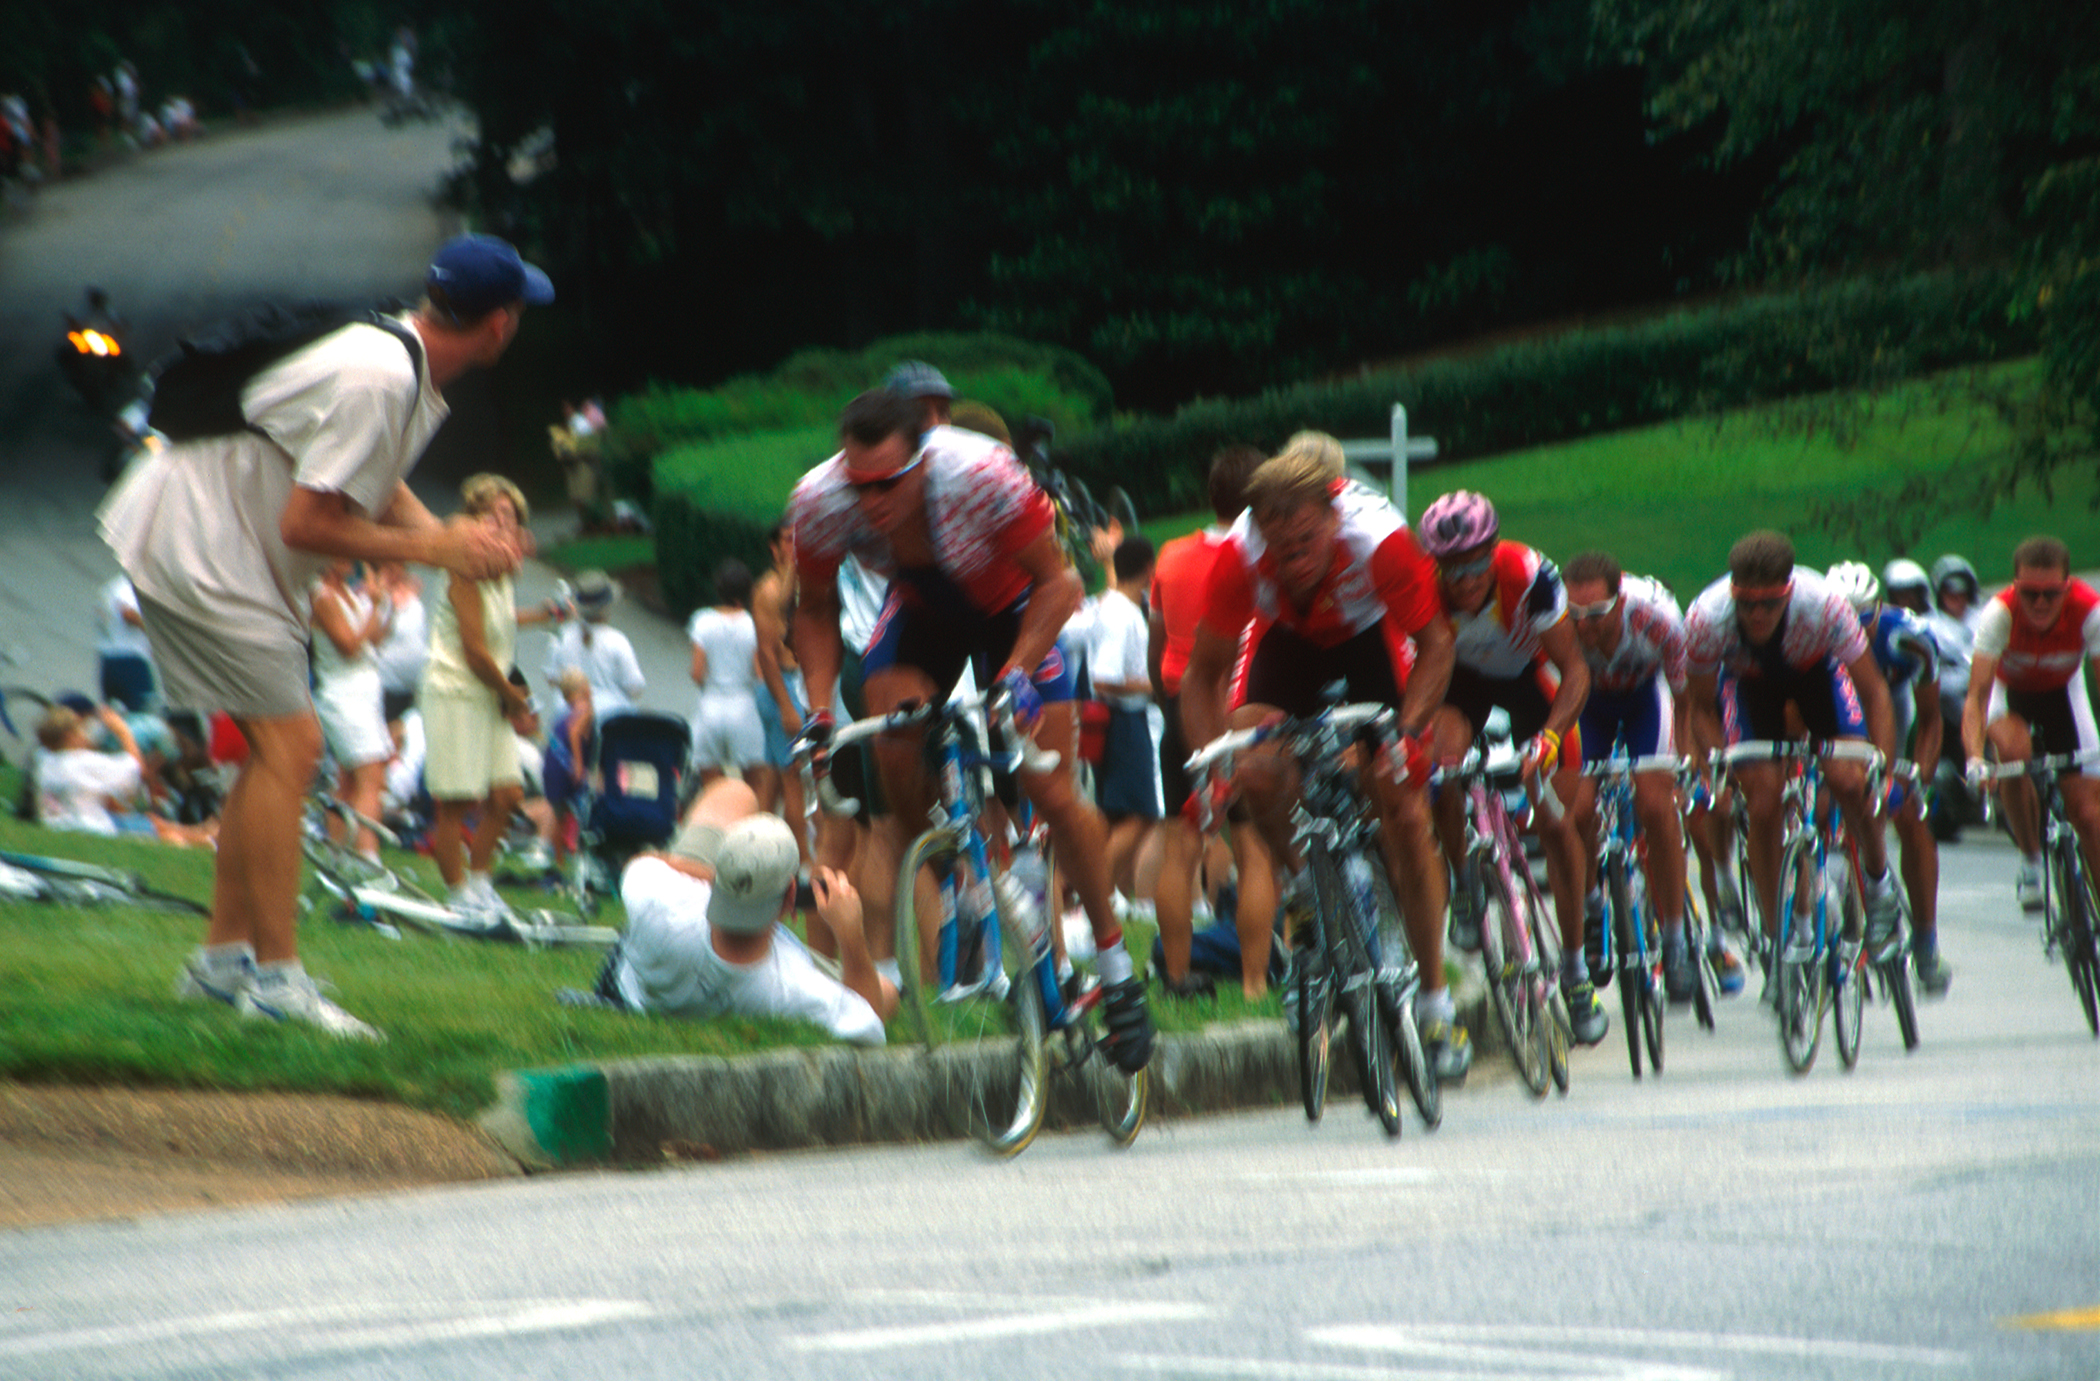 1996 Men's Olympic Road Race. Atlanta GA. 138.7 miles at an average speed of 28.14MPH! Left to Right - Lance Armstrong - USA, Zbigniew Spruch - Poland, Melchor Mauri - Spain, Max Sciandi - Great Britain, Frankie Andreau - USA, Fabio Baldato - Italy, Rolf Sorenson - Denmark and a few hidden guys. Shot on film.